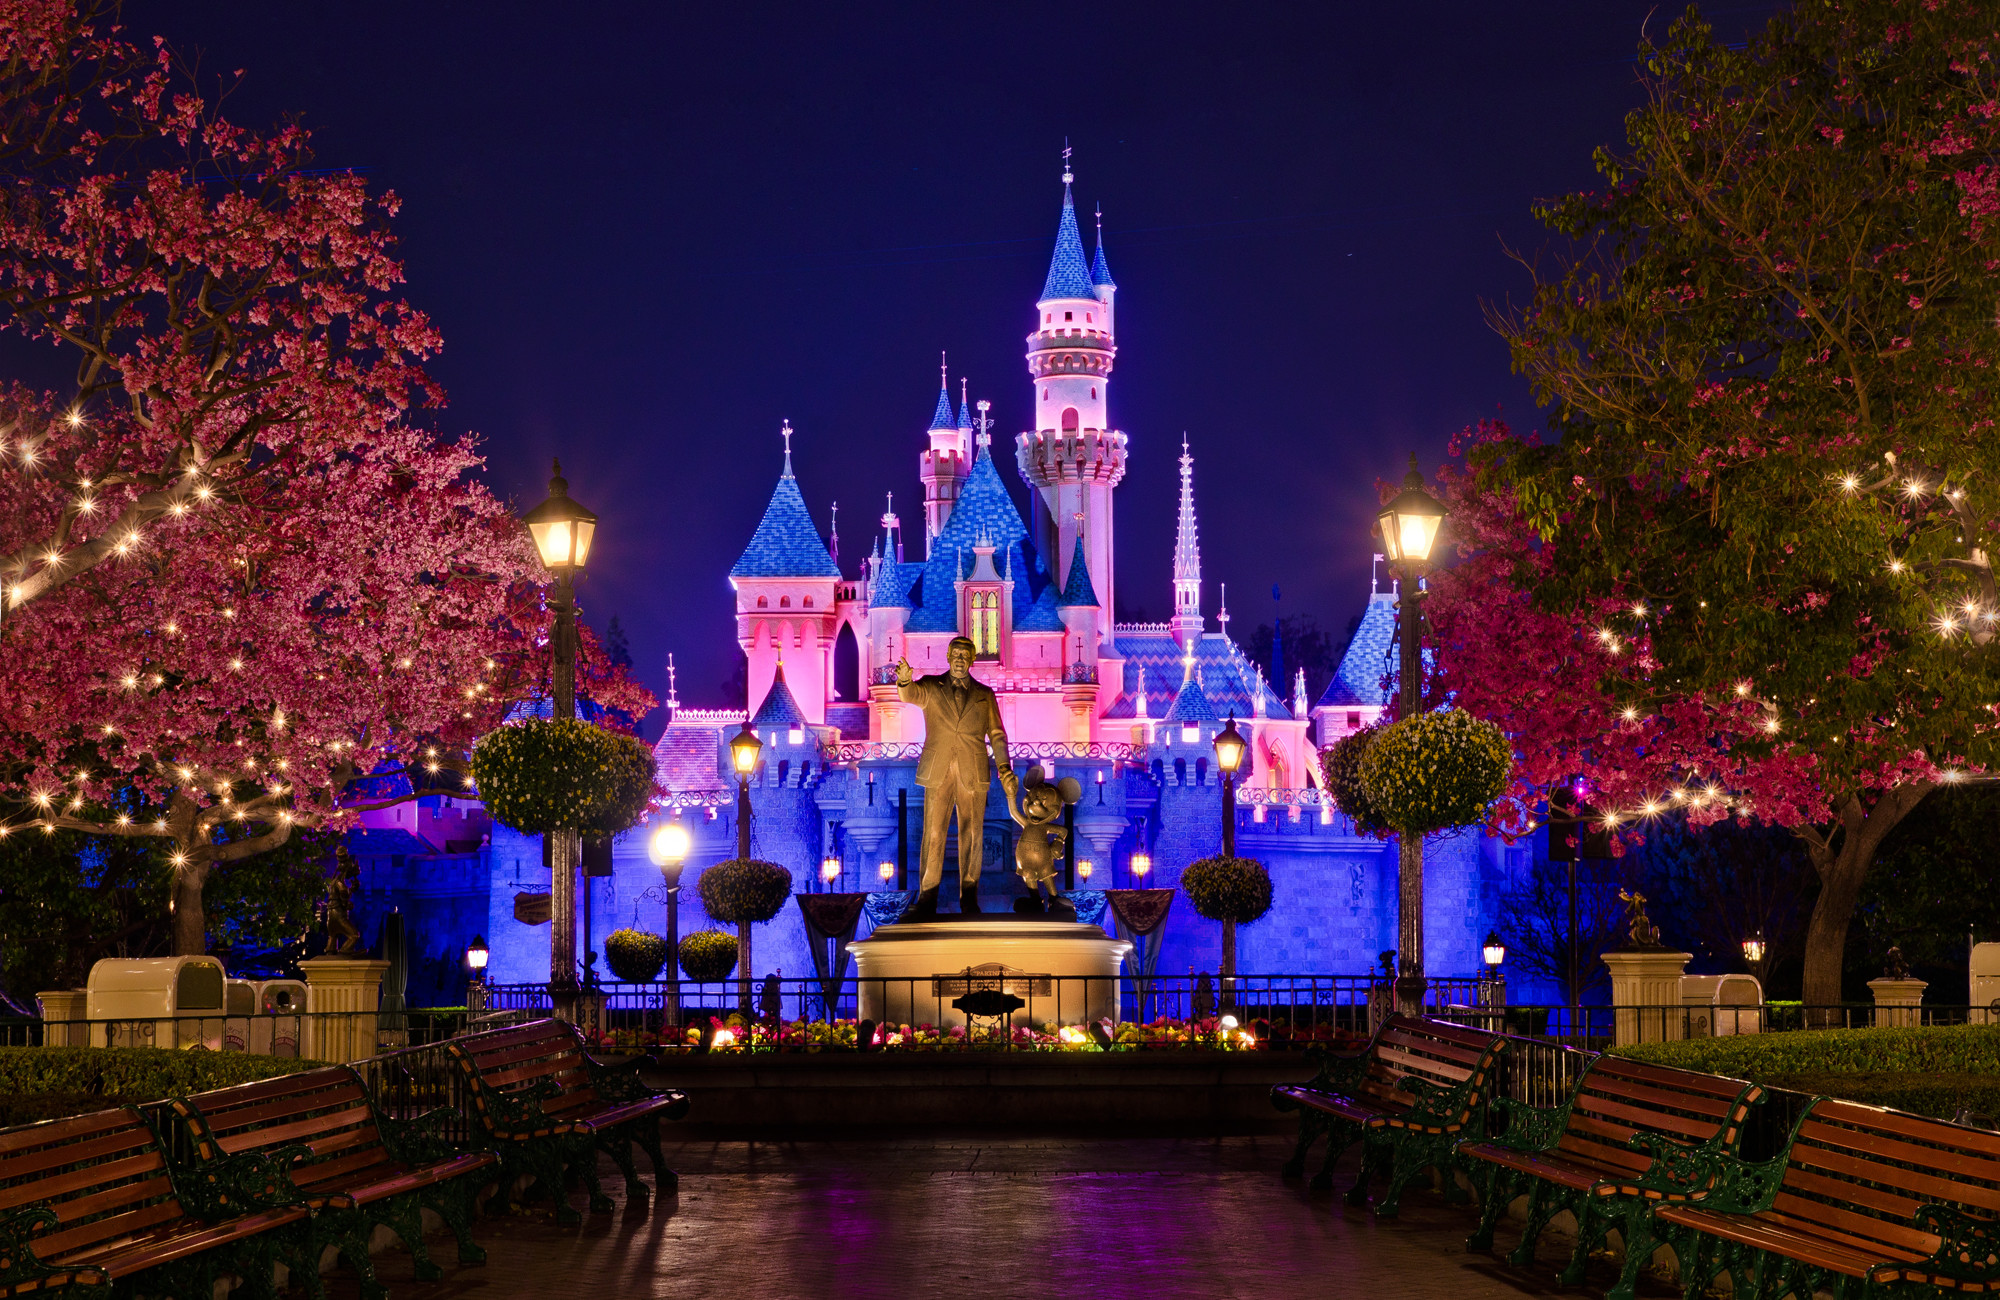 2000x1300 Disneyland California United States wwwvistanaturecom